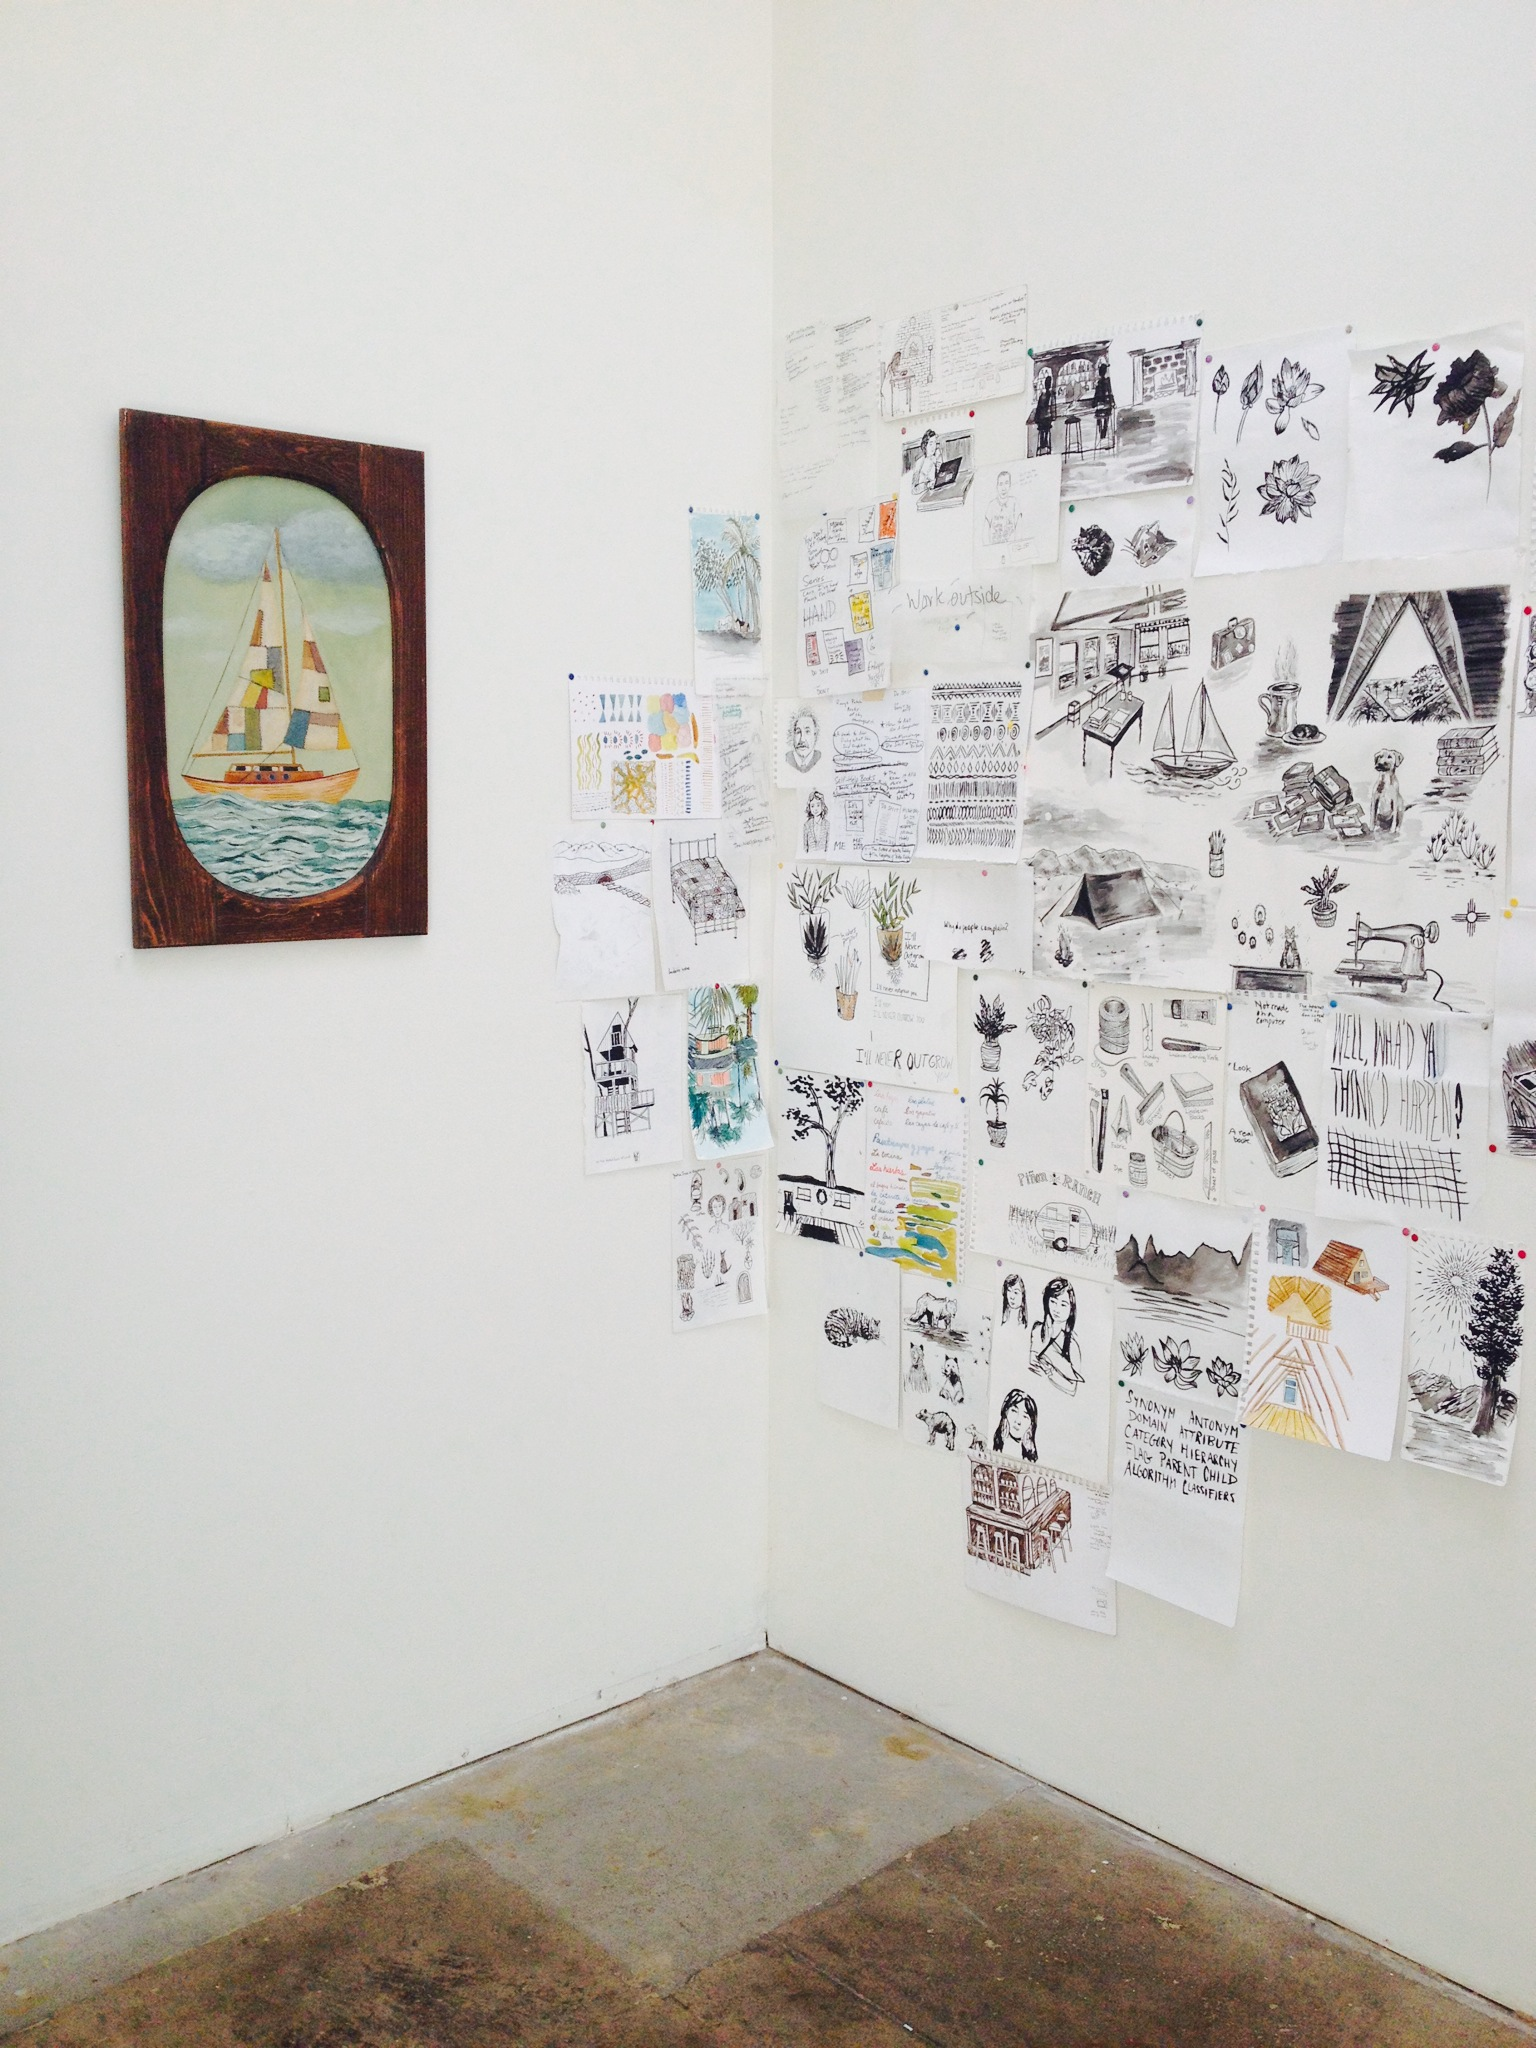 Installation for Lay Low solo show at Seeing Things Gallery